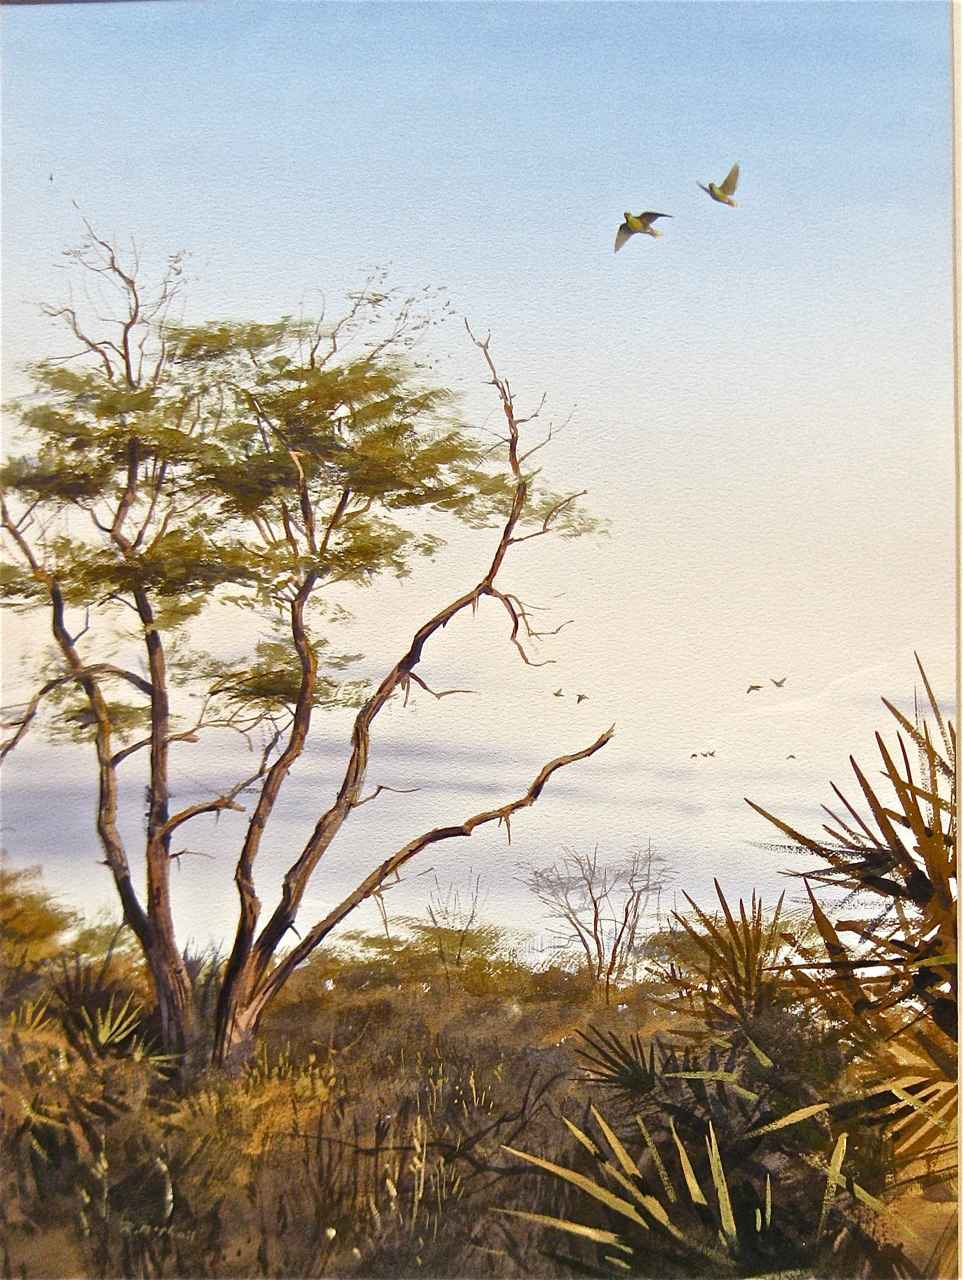 Green Pigeons by  Rodger McPhail - Masterpiece Online